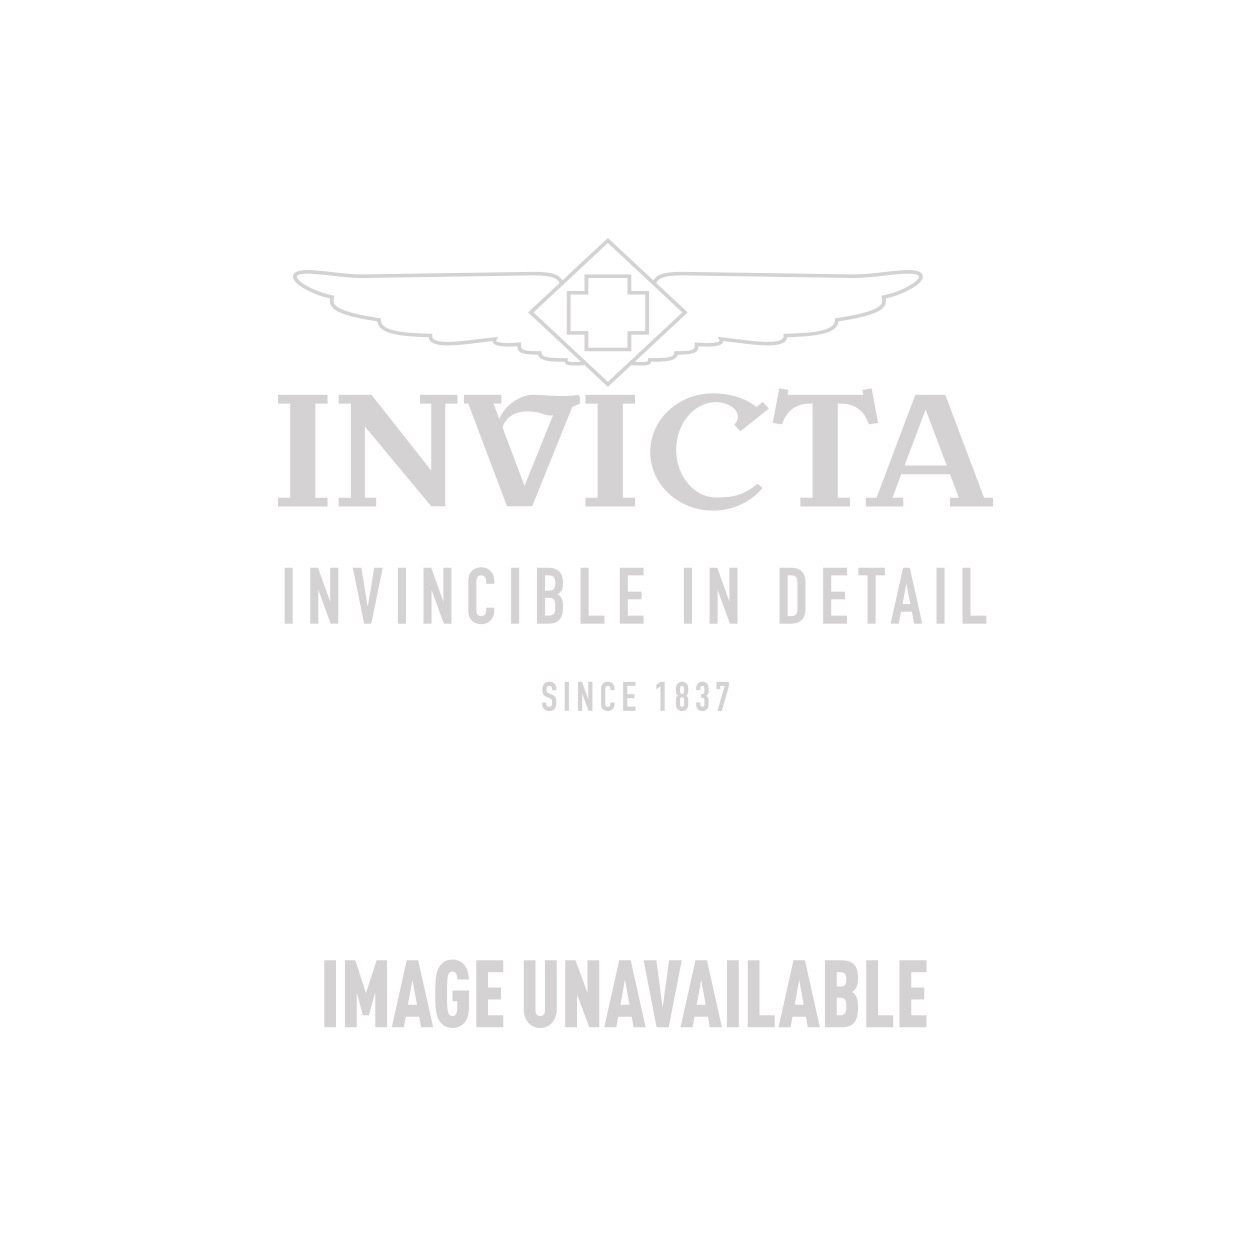 Invicta Bolt Swiss Made Quartz Watch - Rose Gold, Stainless Steel case Stainless Steel band - Model 21342